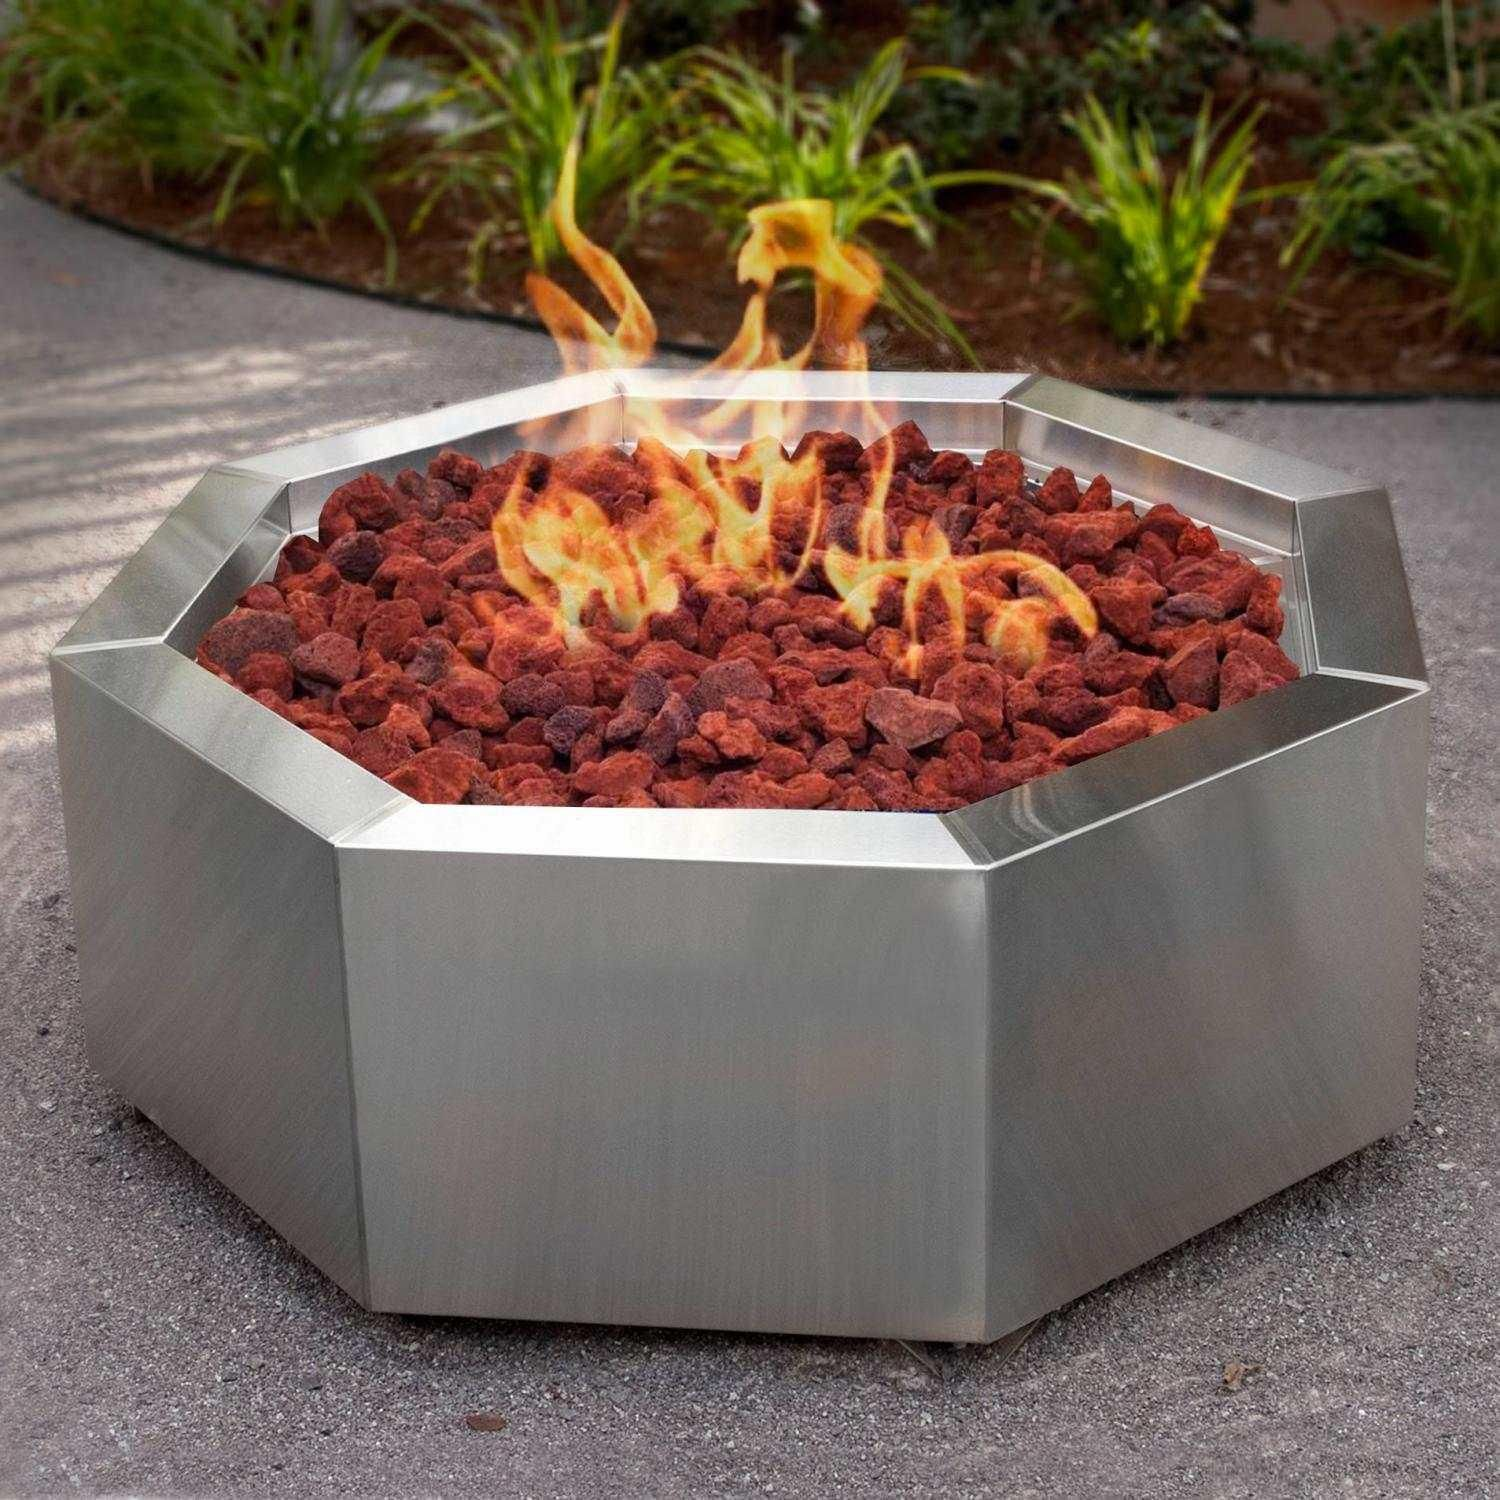 5277332df24dcd7f2c9c344bd59ed4bf Top Result 50 Awesome Table Fire Bowl Photos 2018 Gst3